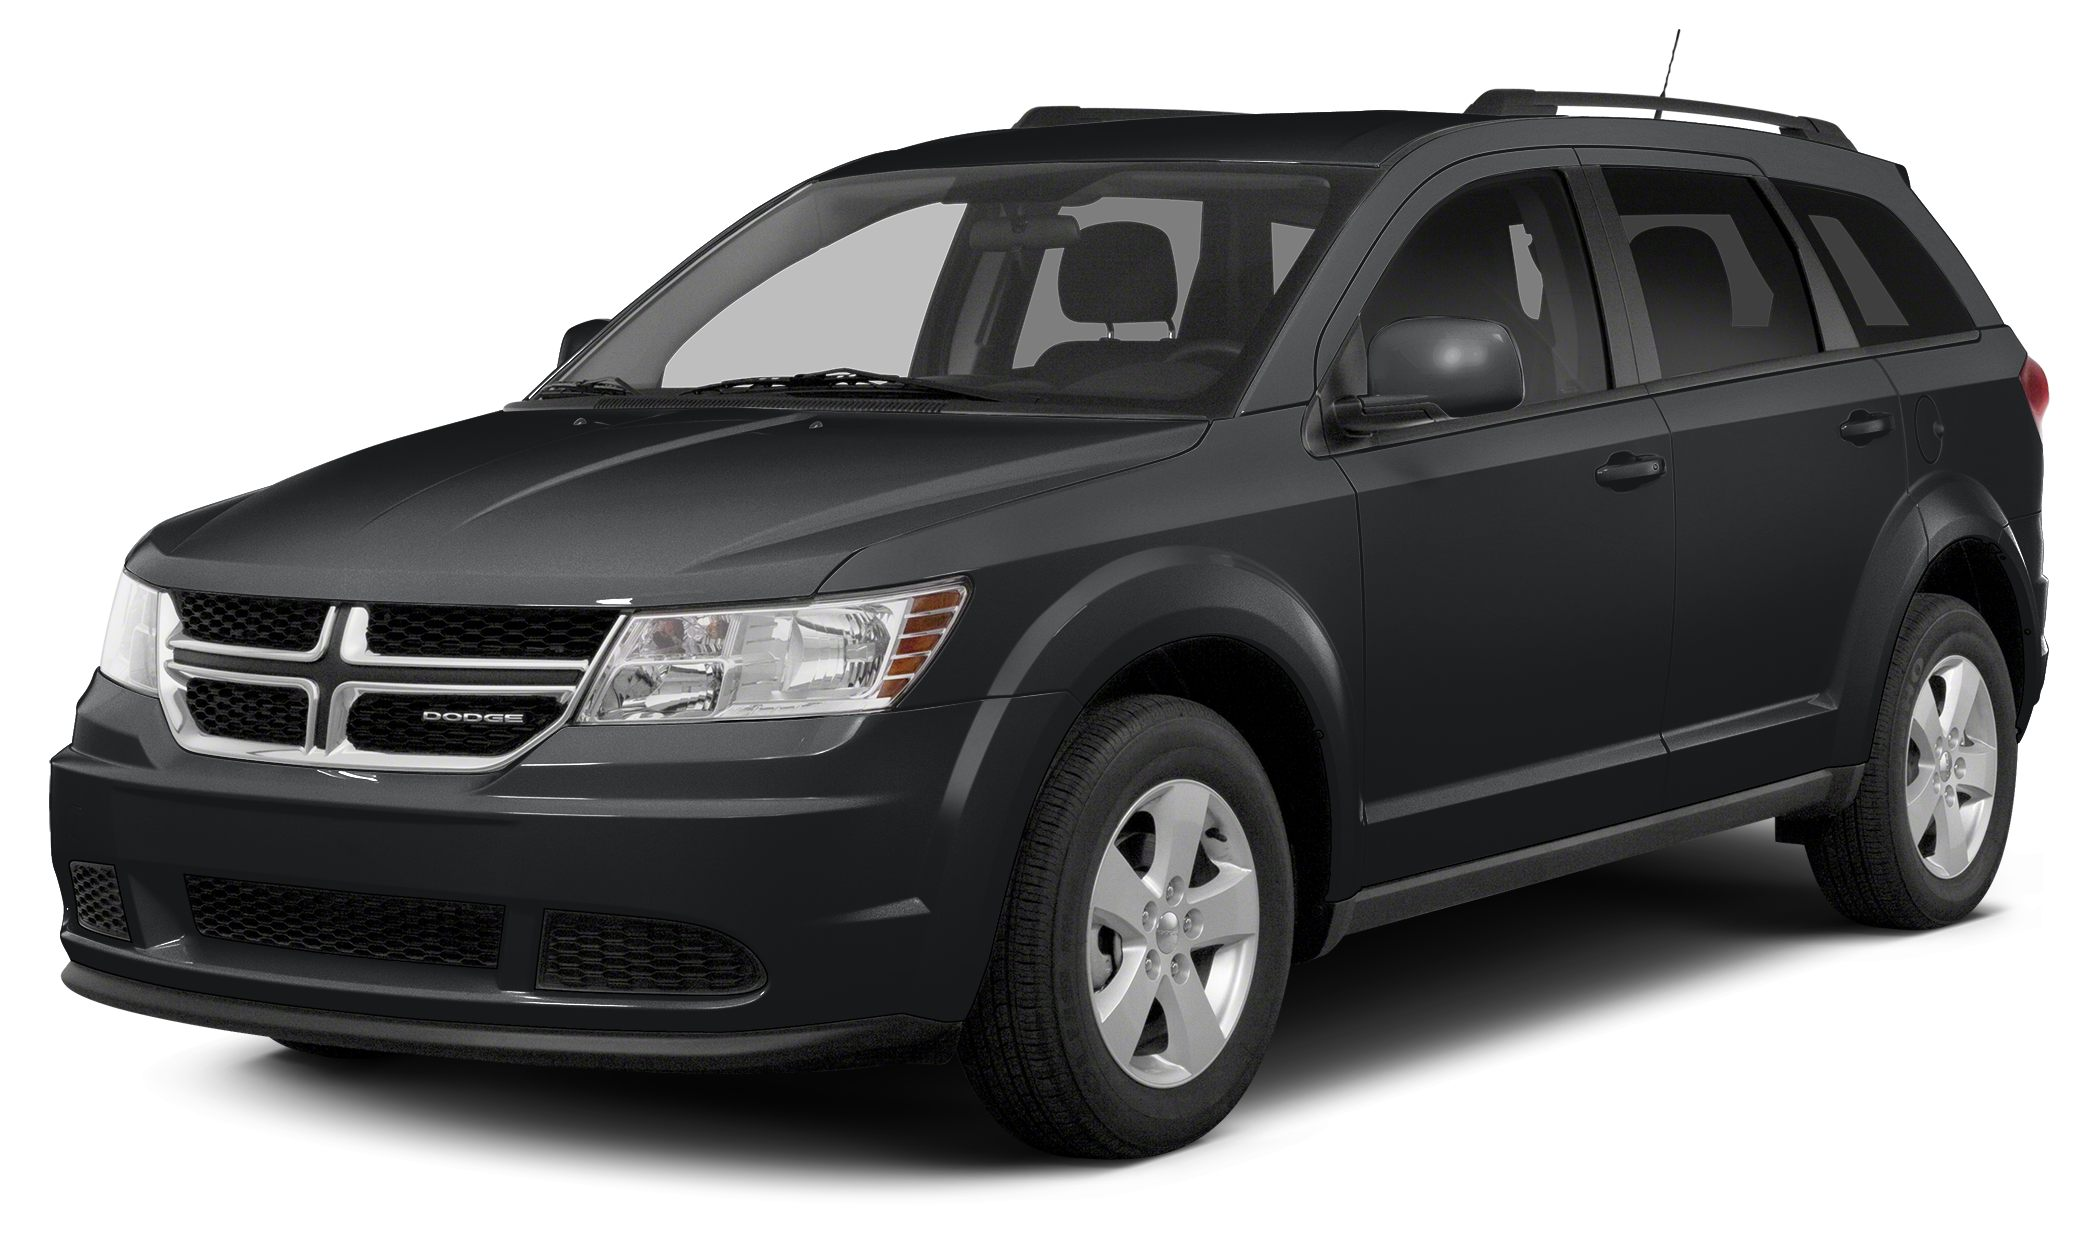 2014 Dodge Journey SXT DISCLAIMER We are excited to offer this vehicle to you but it is currently